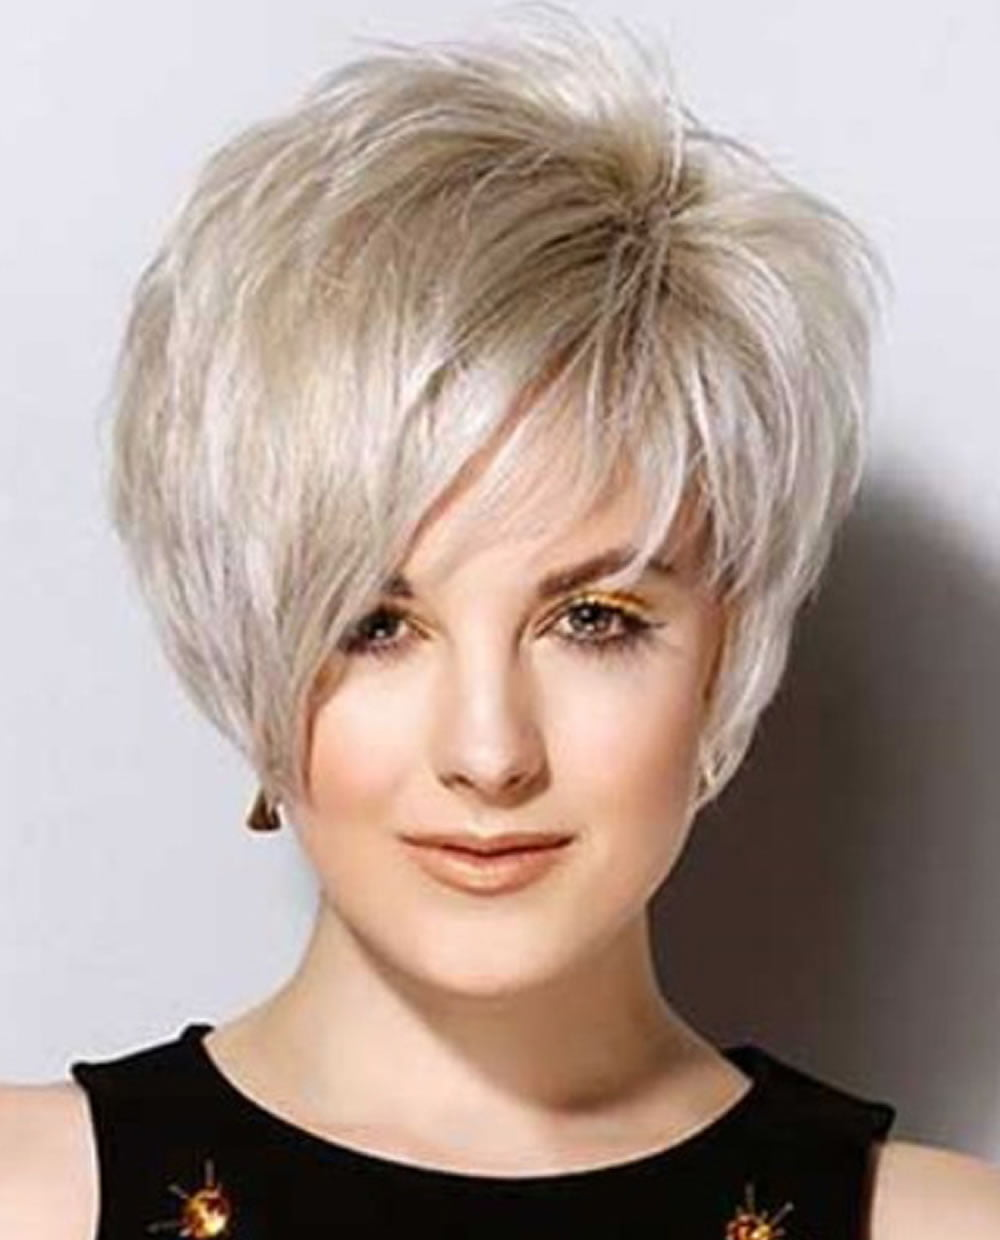 16 Cute Hairstyles for Short Hair